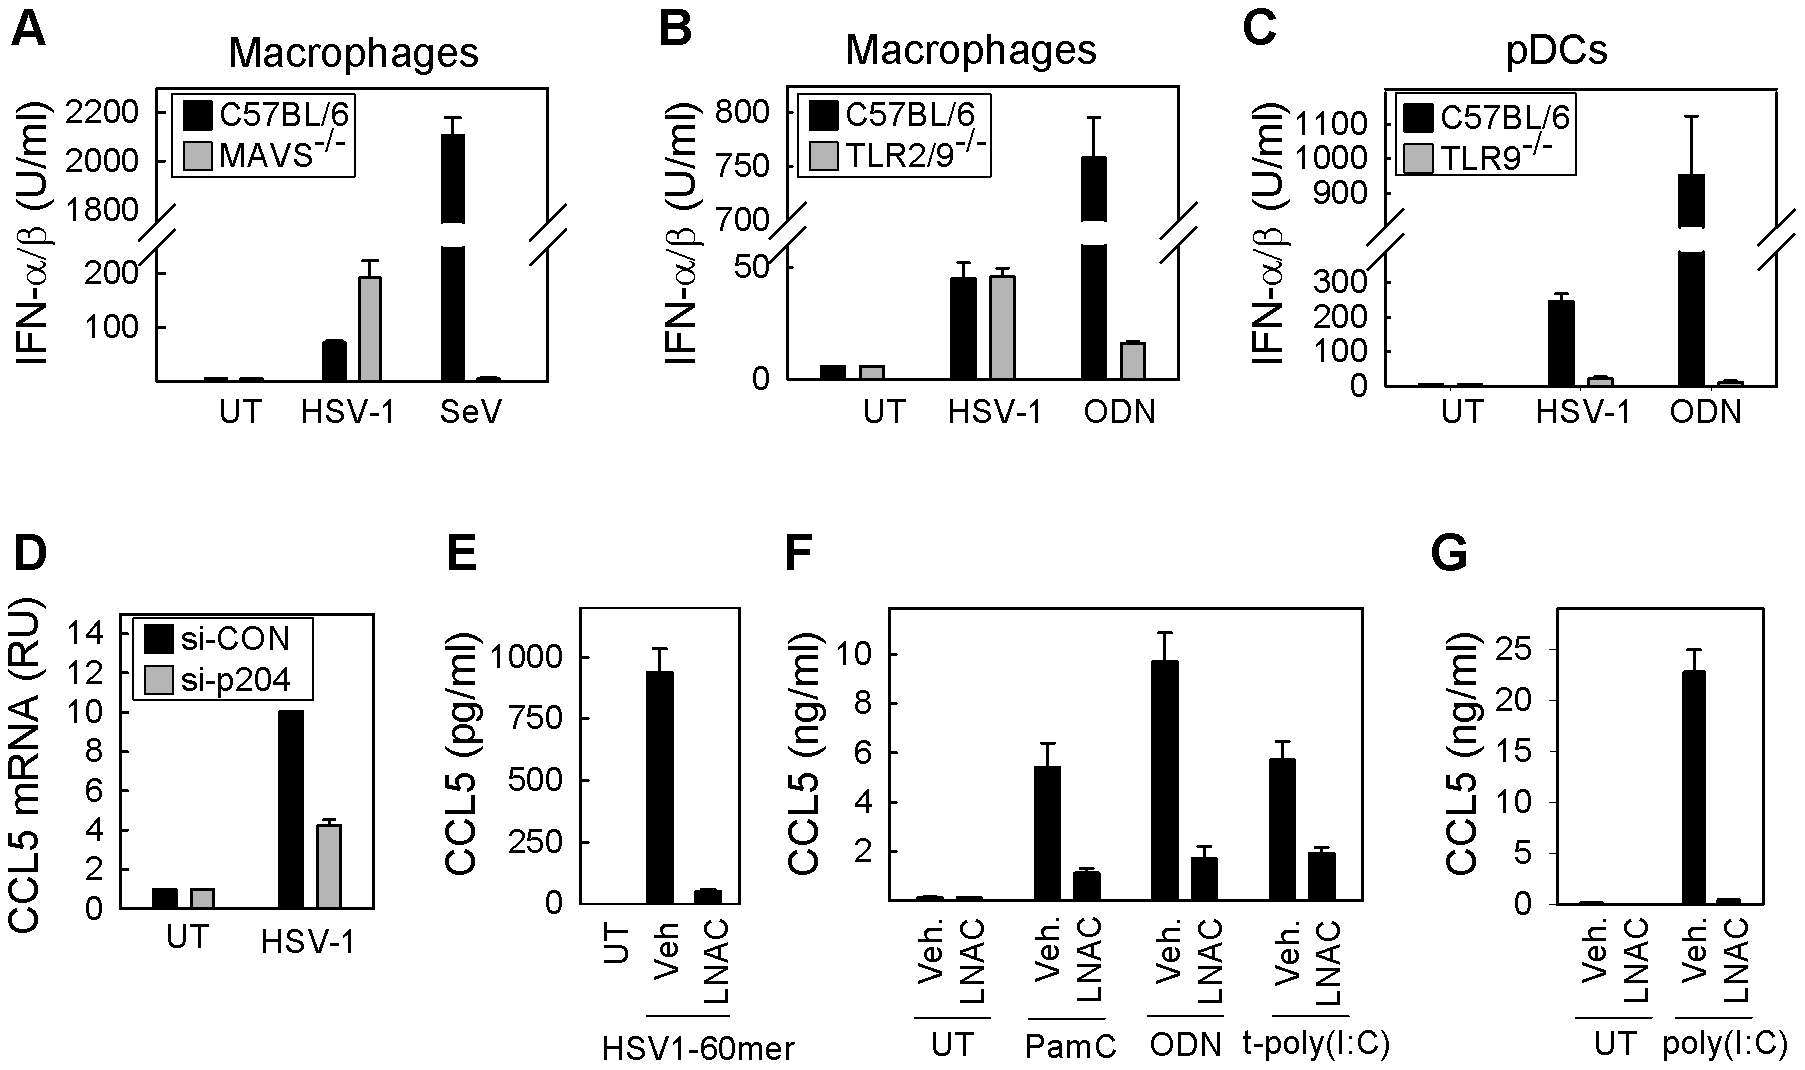 ROS and innate antiviral response: Cell-type and PRR dependence.